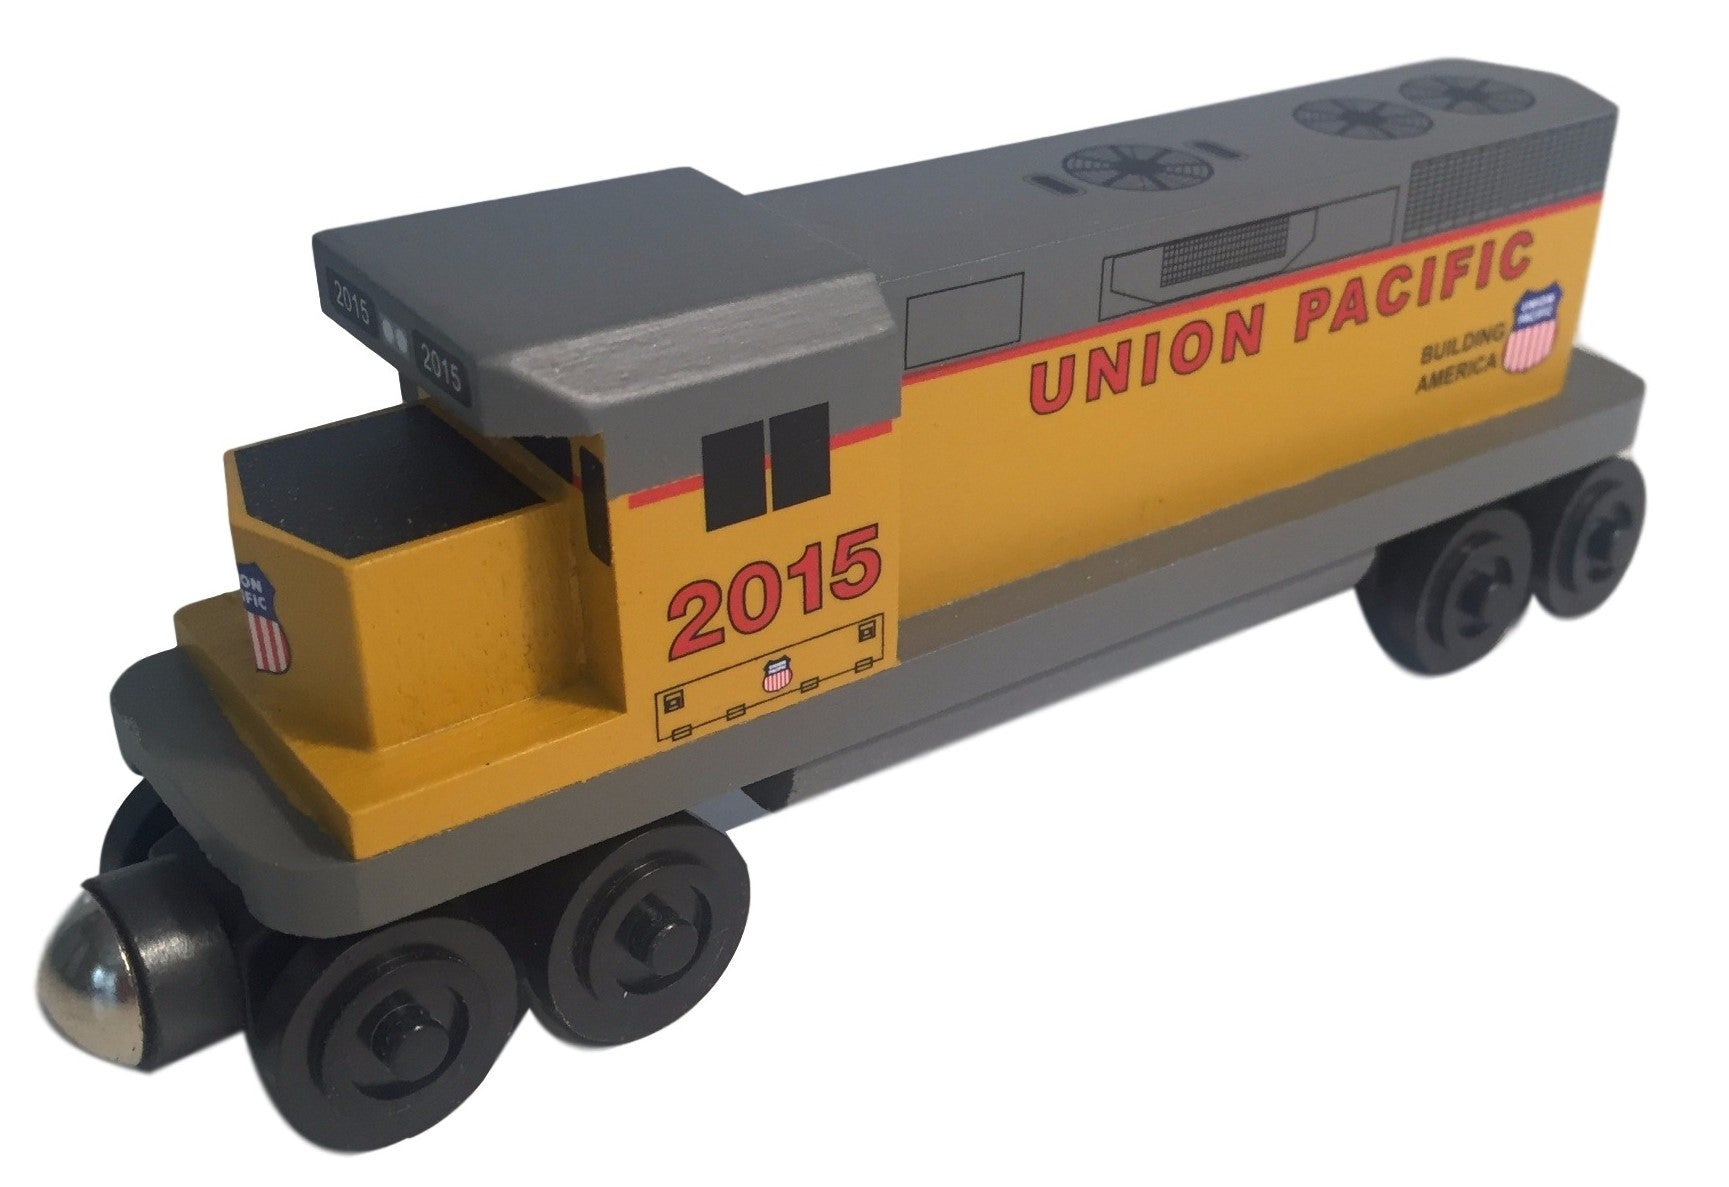 Whittle Shortline Railroad Union Pacific GP-38 Diesel Engine Wooden Toy Train